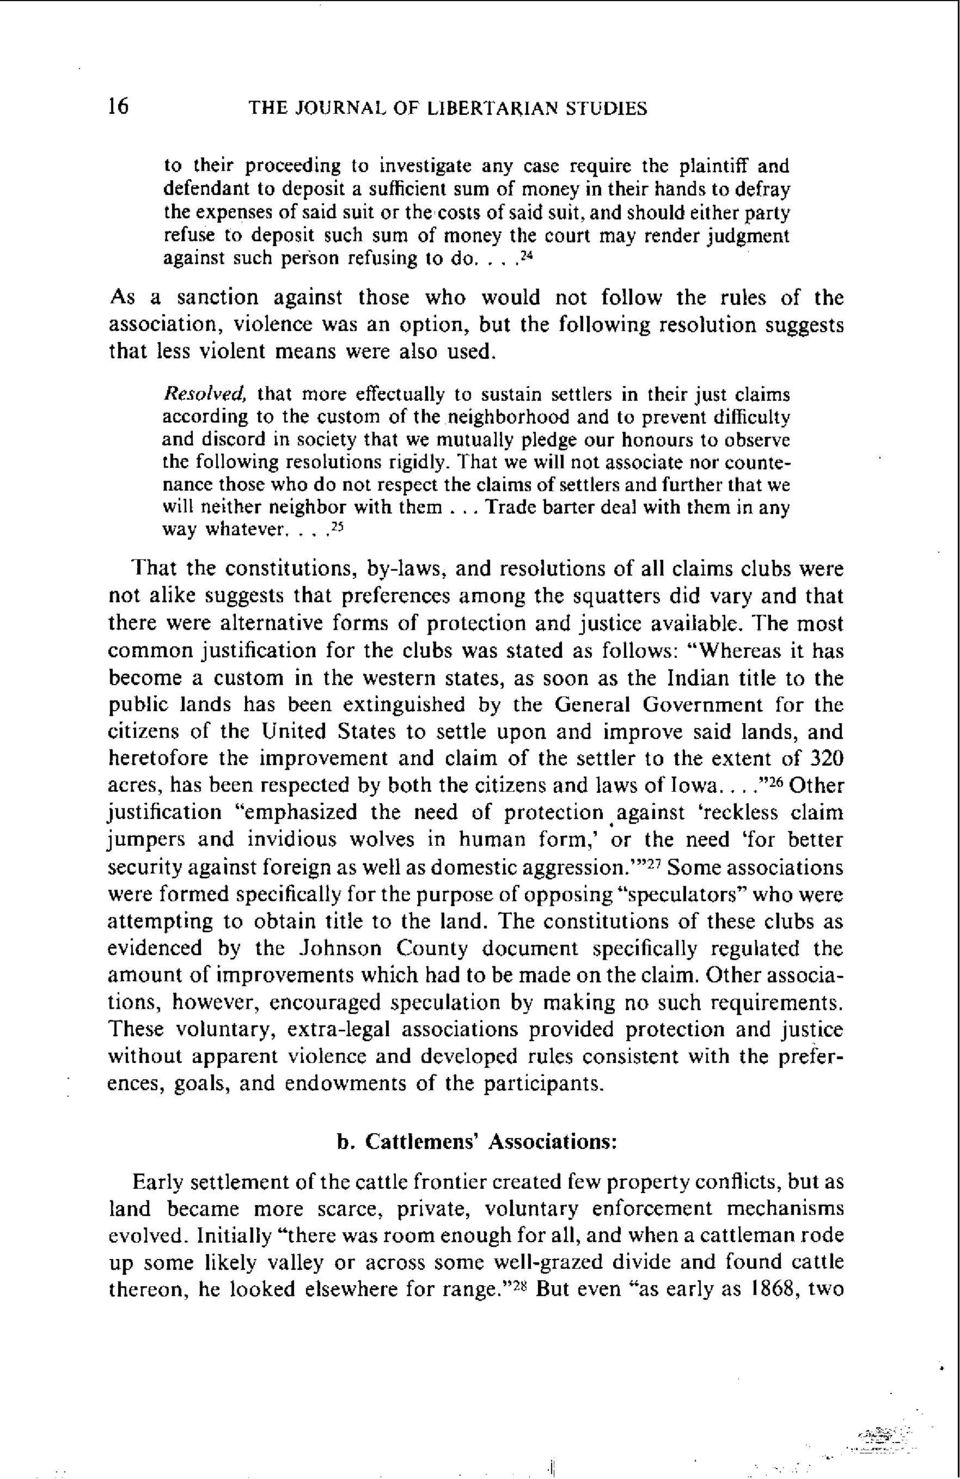 ...24 As a sanction against those who would not follow the rules of the association, violence was an option, but the following resolution suggests that less violent means were also used.